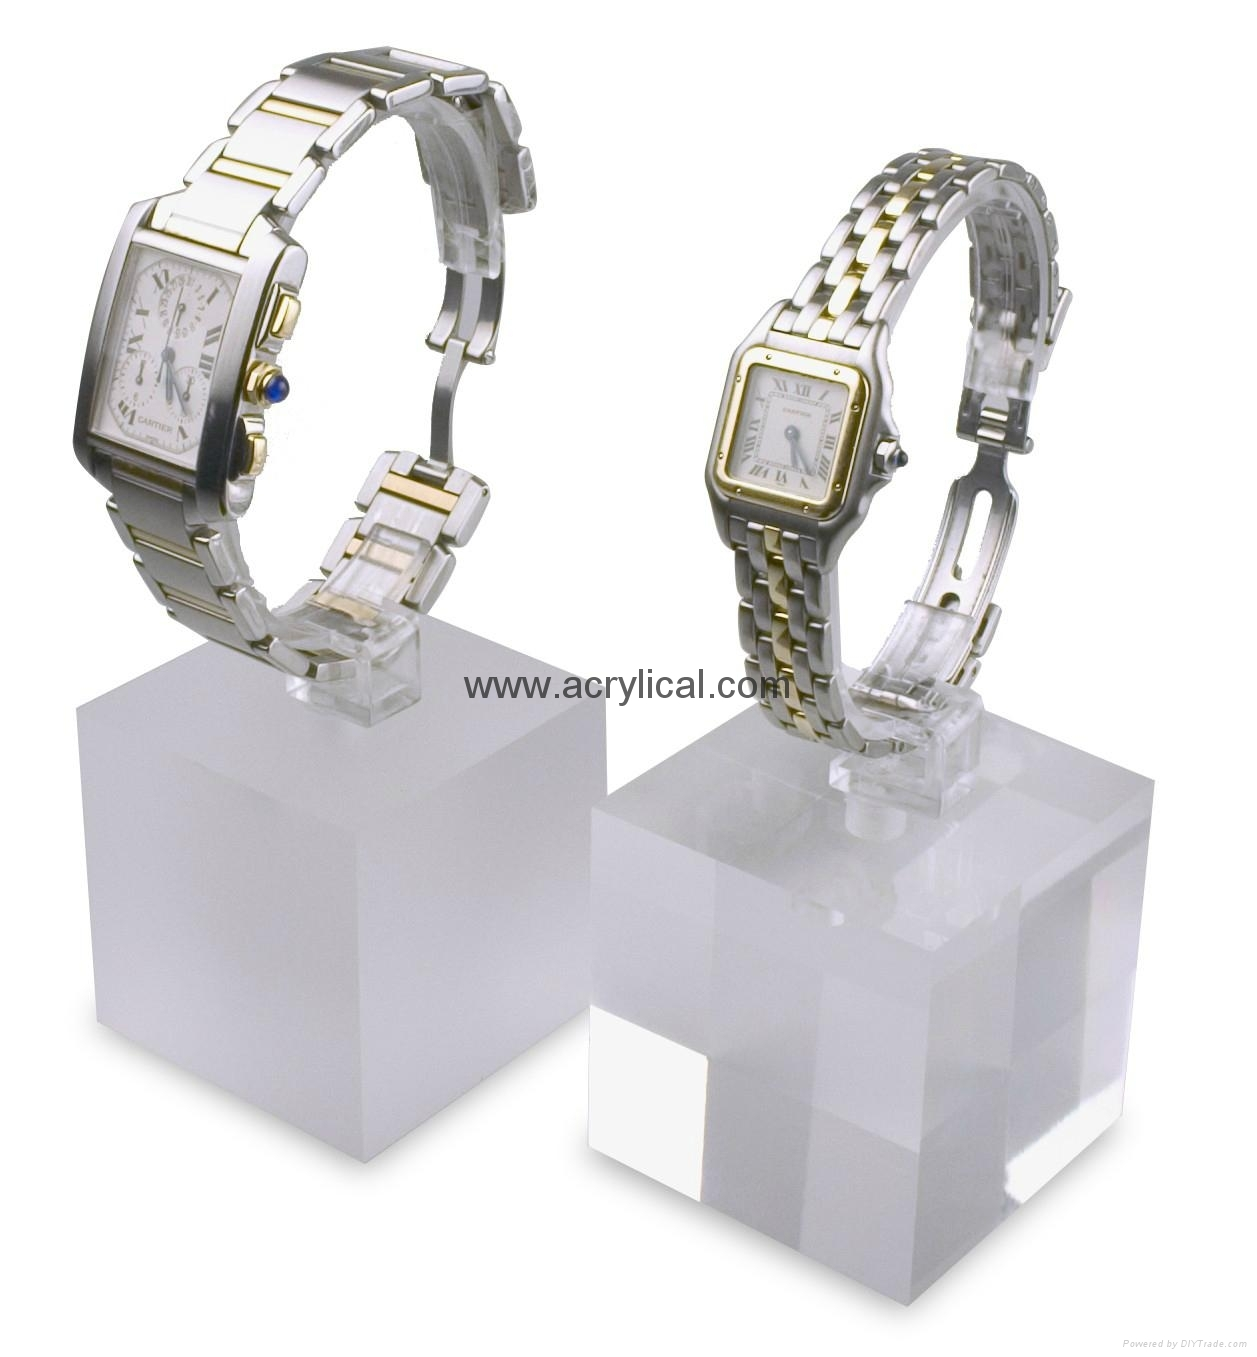 High quality watch display stand & custom watch acrylic display,Custom Acrylic Watch Display Stand,watch display,watch display holder,wrist watch display stand